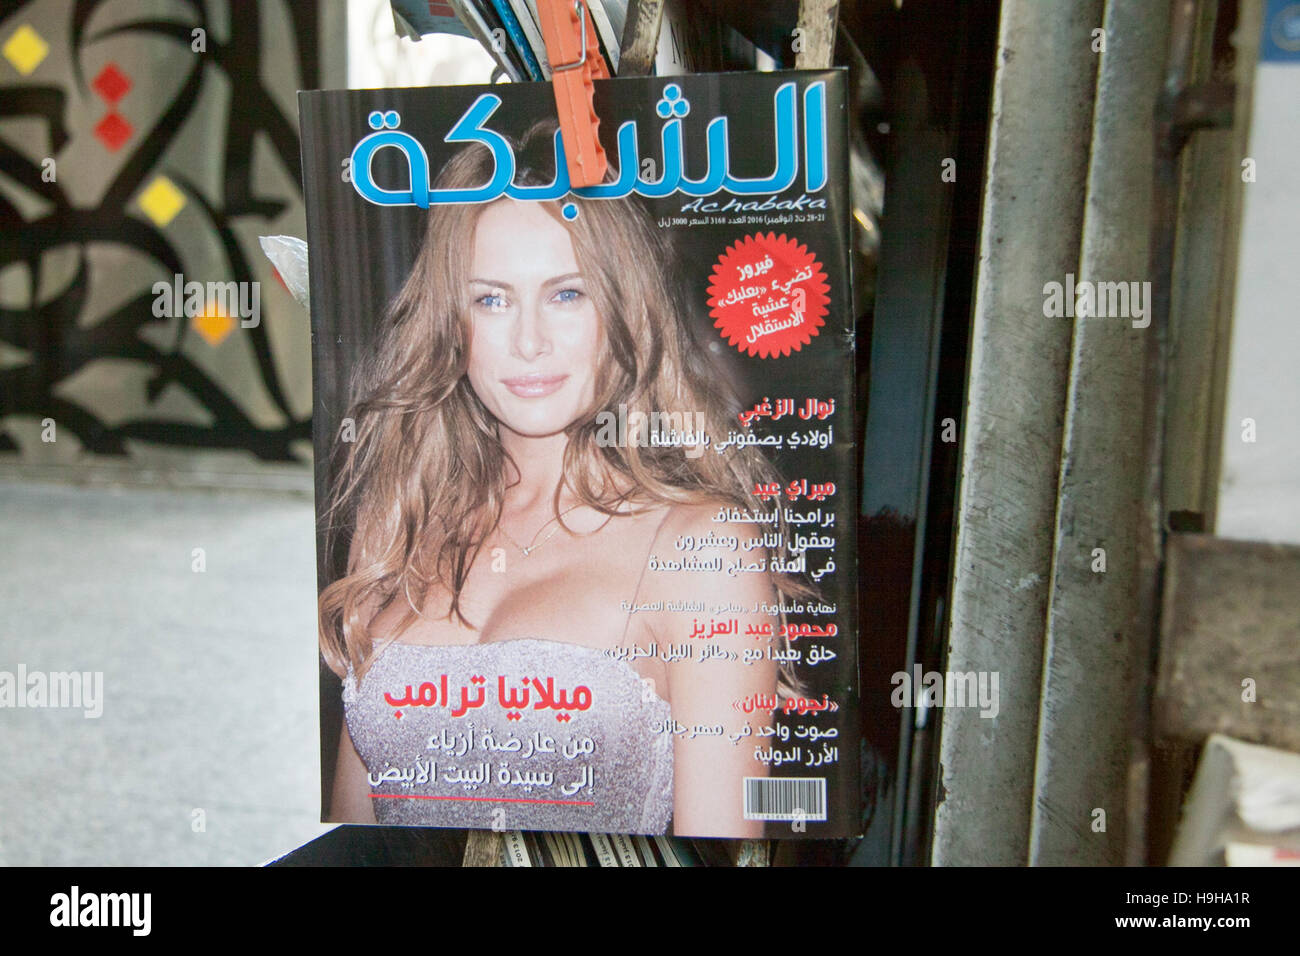 beirut lebanon 24th november 2016 a picture of melania trump wife of us